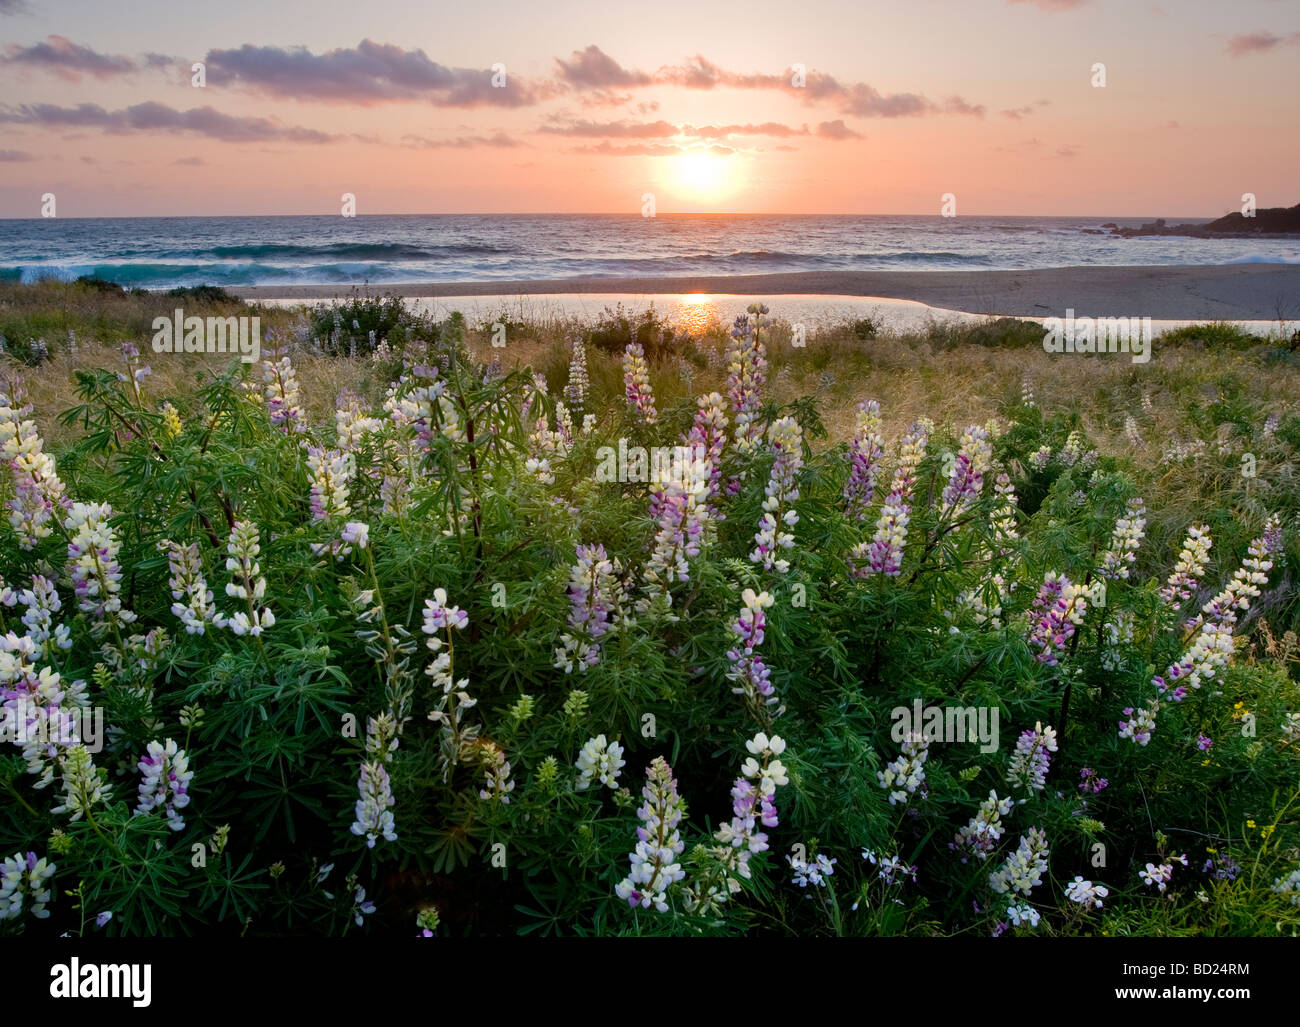 Bush lupine flowers along Carmel River State Beach at sunset. - Stock Image